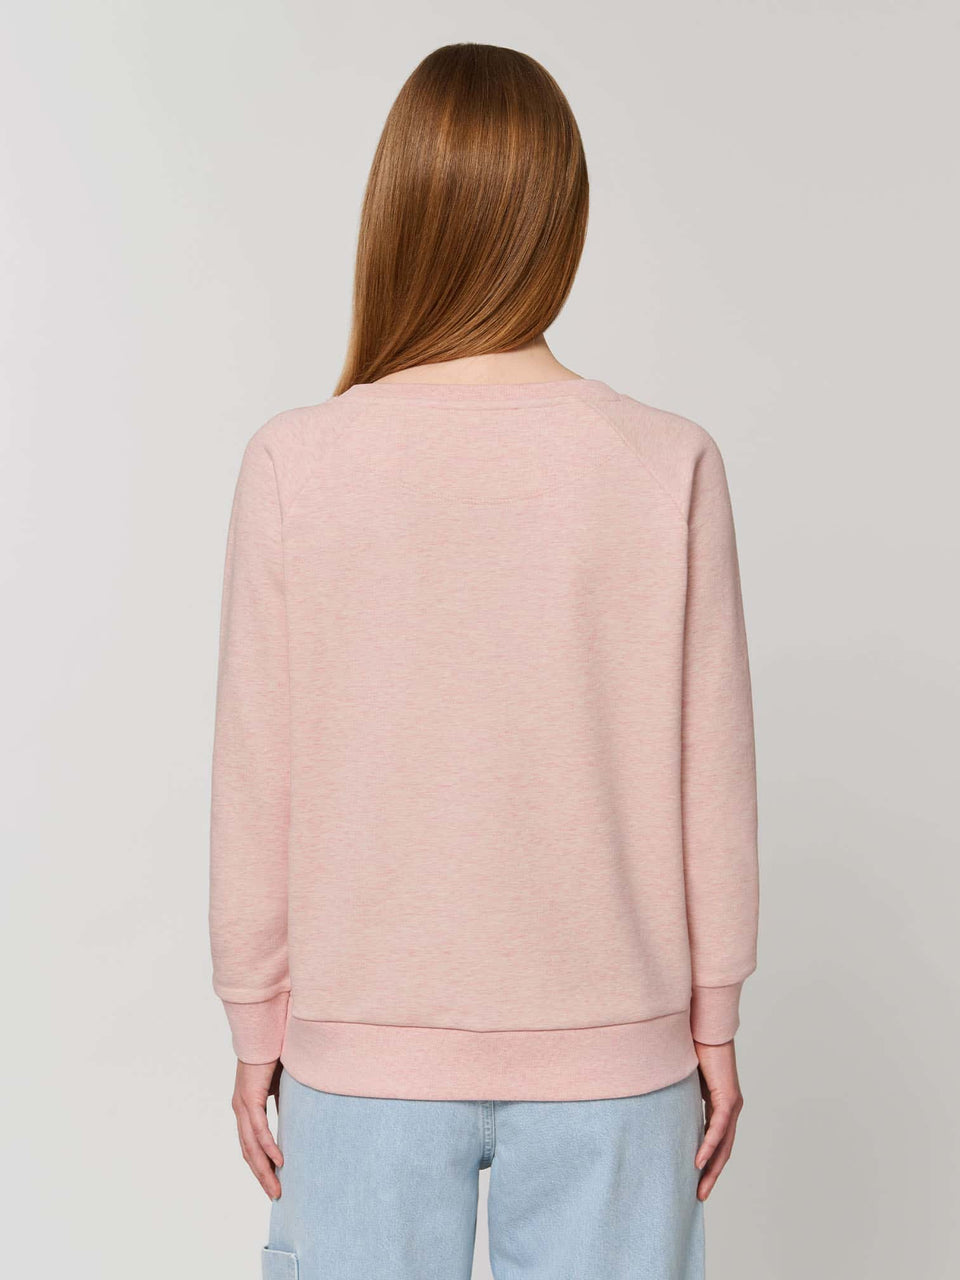 Bufo Alvarius Made To Order  Women relaxed fit sweatshirt - Cream Heather Pink